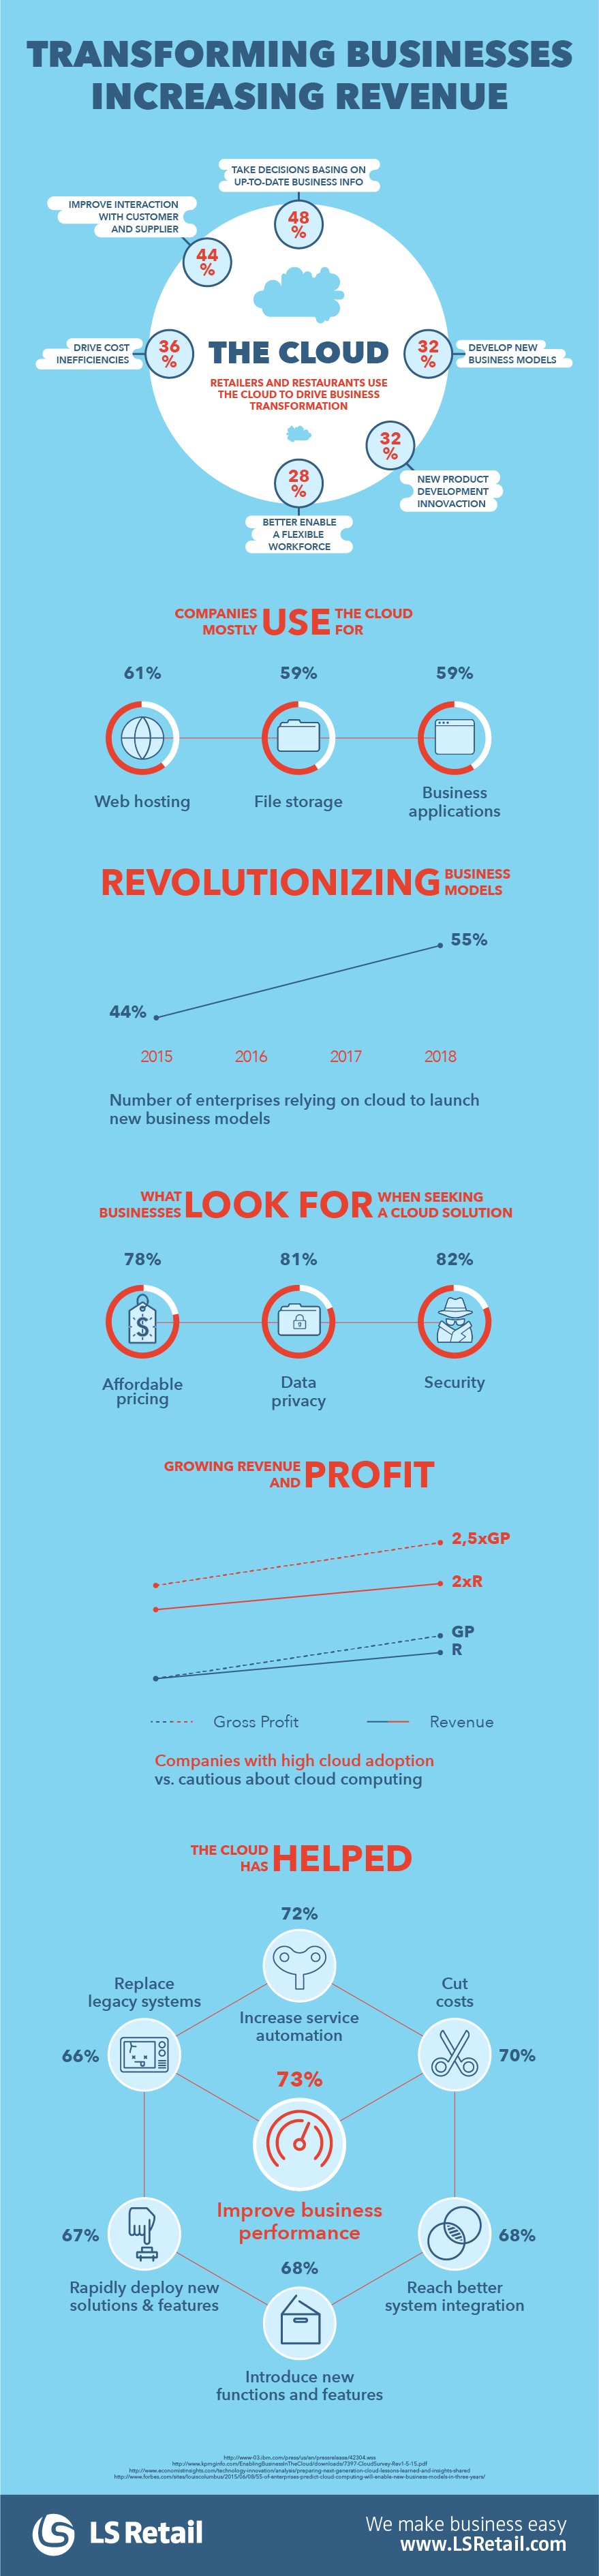 The cloud transforming businesses